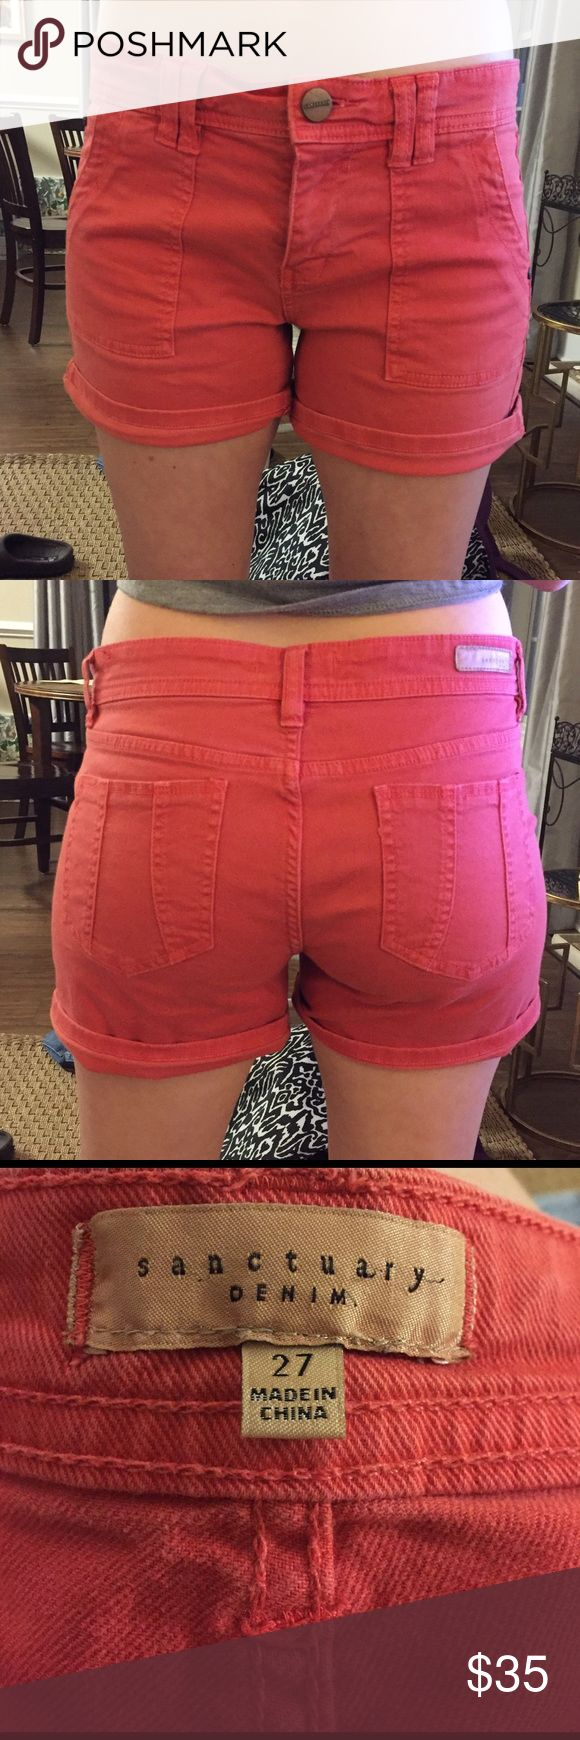 Sanctuary Denim Coral shorts Sanctuary Denim Coral shorts. Size 27. Can be worn rolled up or not. Stretchy fit. Worn only a few times! sanctuary denim Shorts